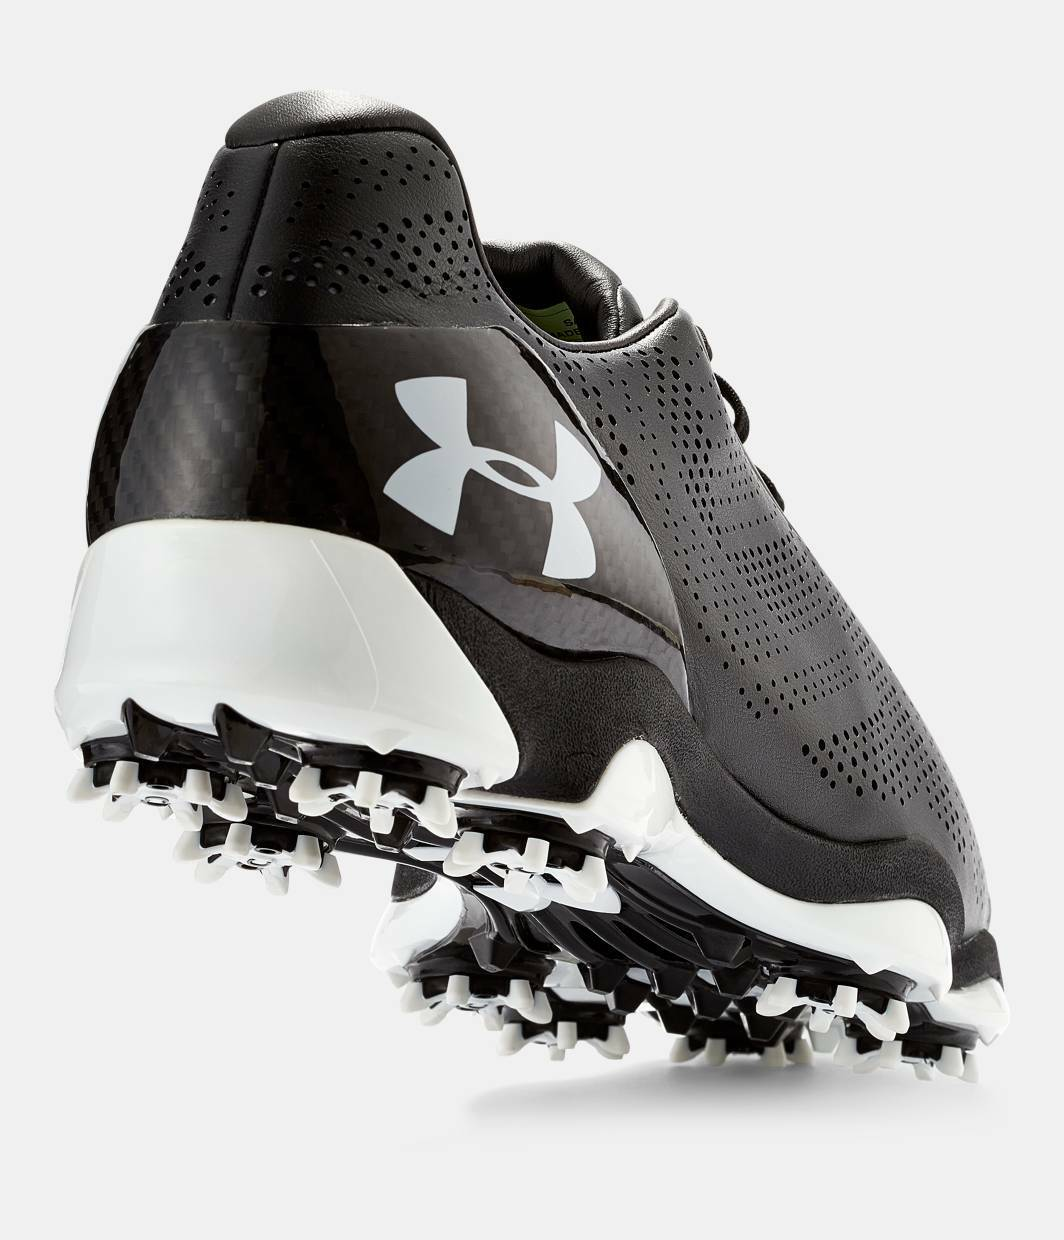 newest 29cf5 94fc6 ... Under Armour UA Drive One One One Jordan Spieth Golf Shoes - Black  White 1267756-